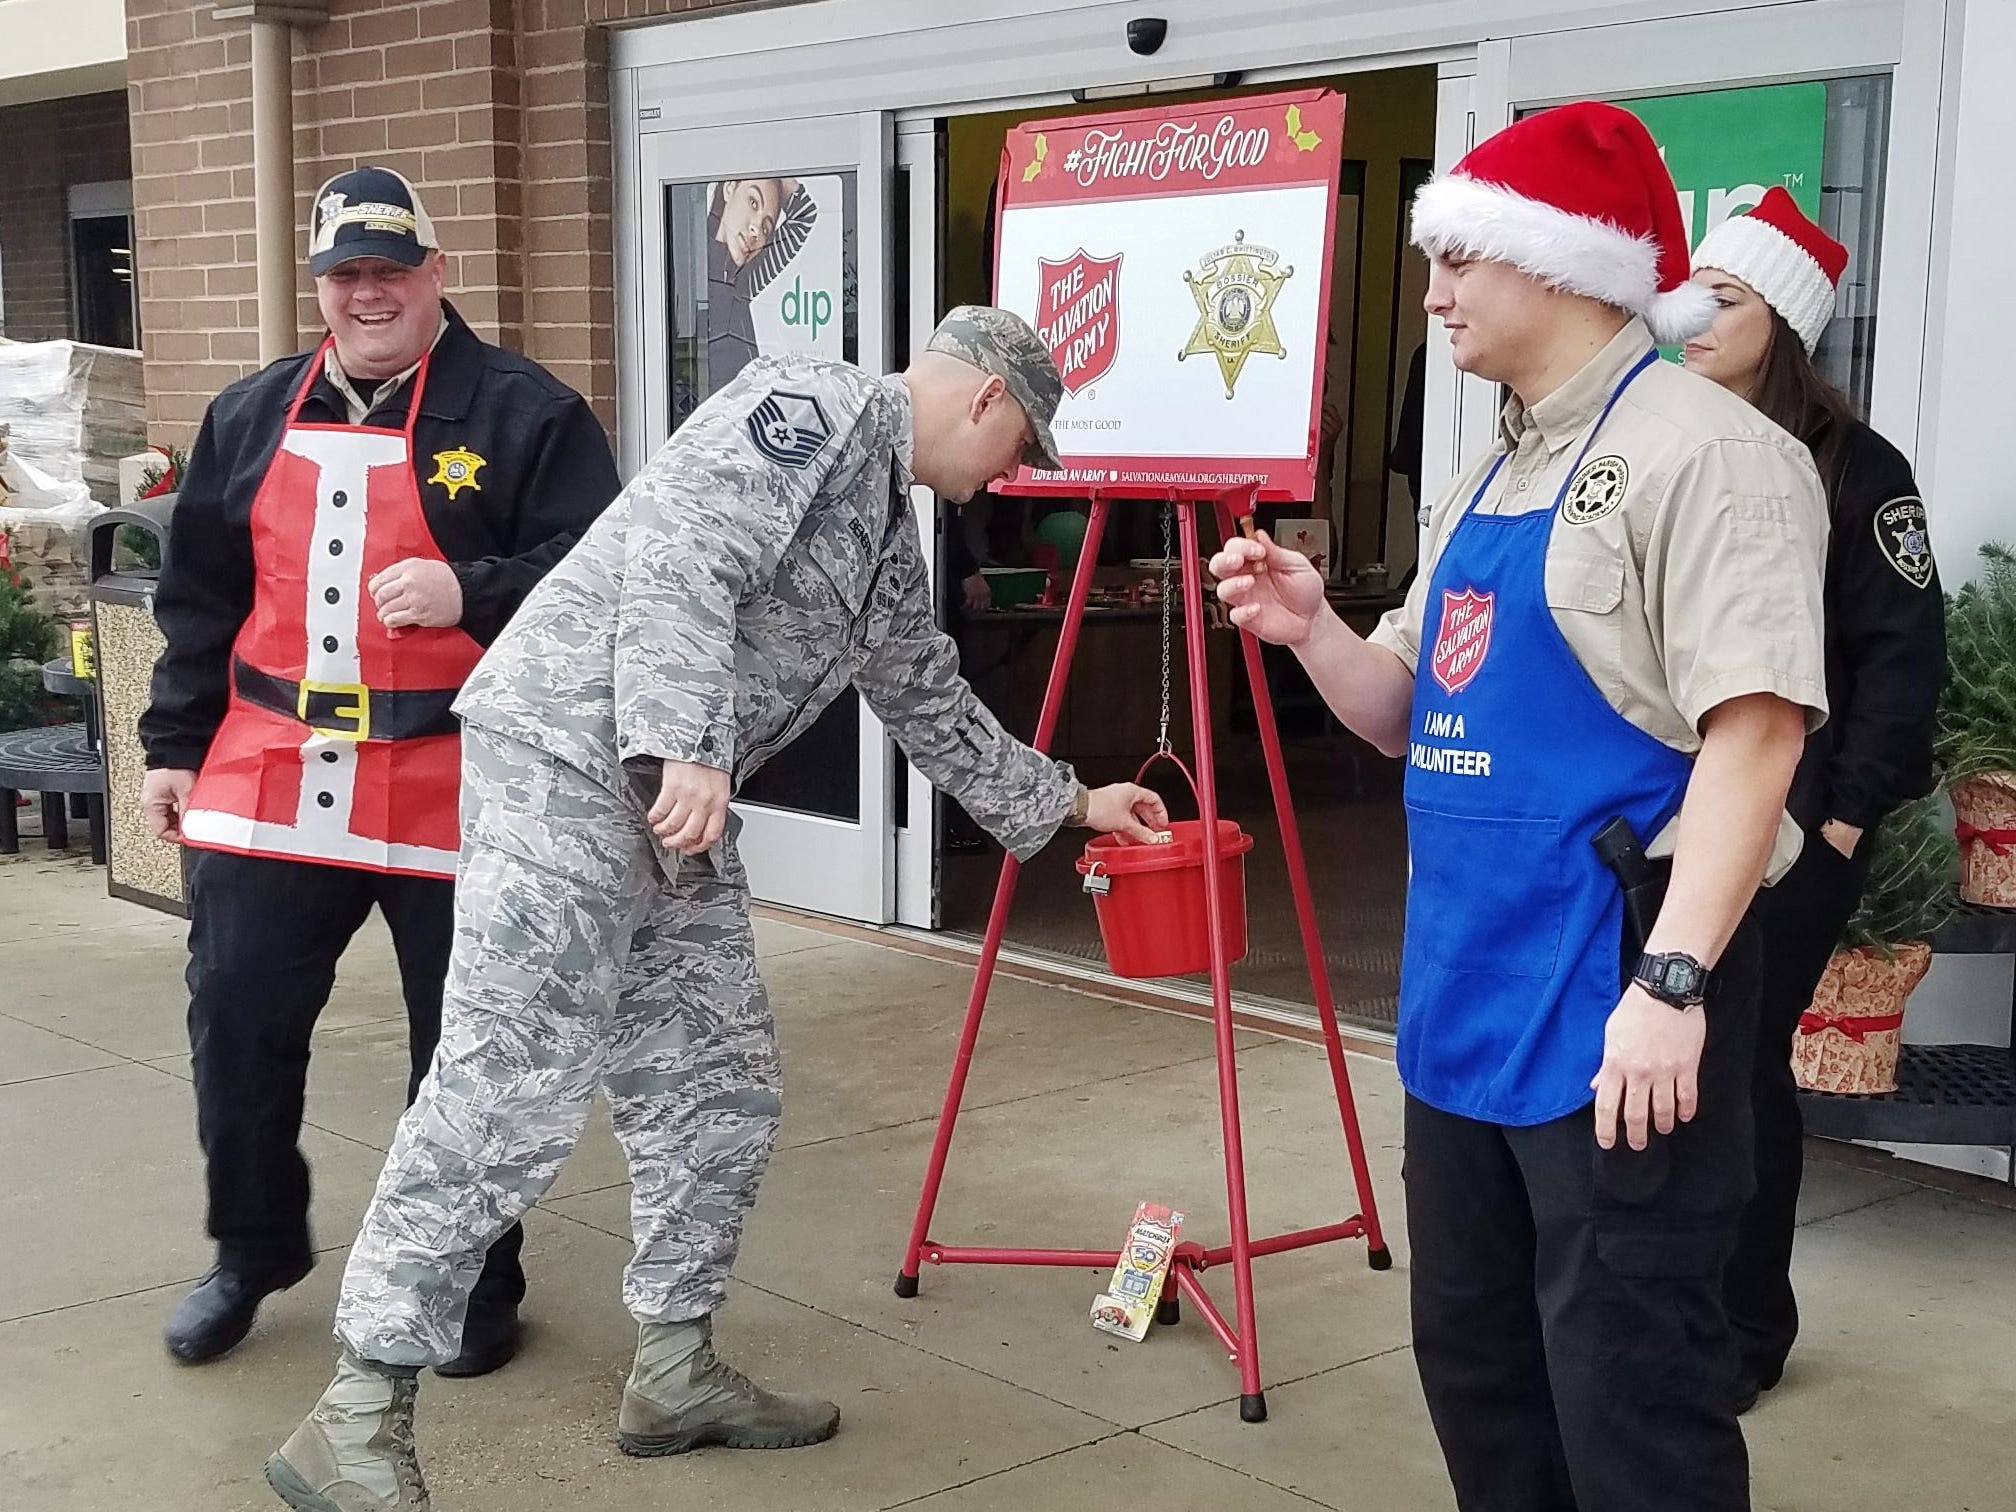 Bossier Sheriff's Office won the 2018 Red Kettle Challenge with $1,864.86.